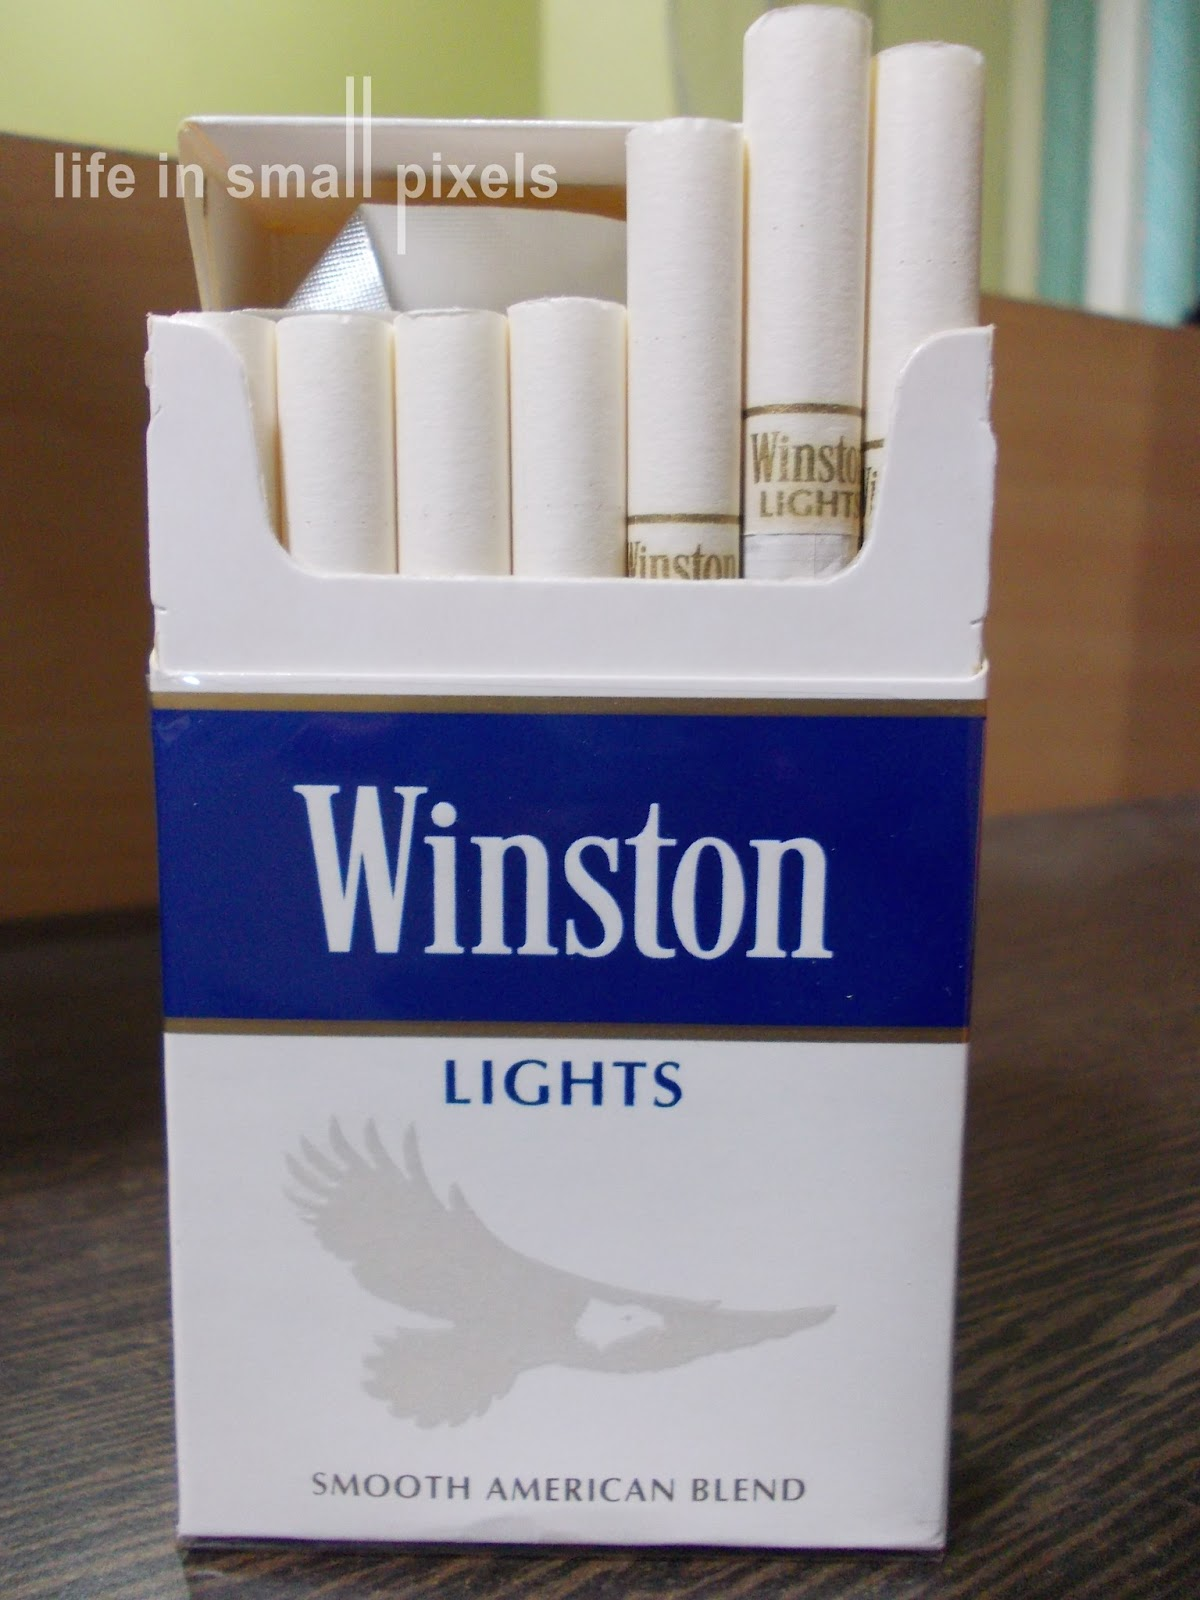 Cigarettes Marlboro in United Kingdom cost